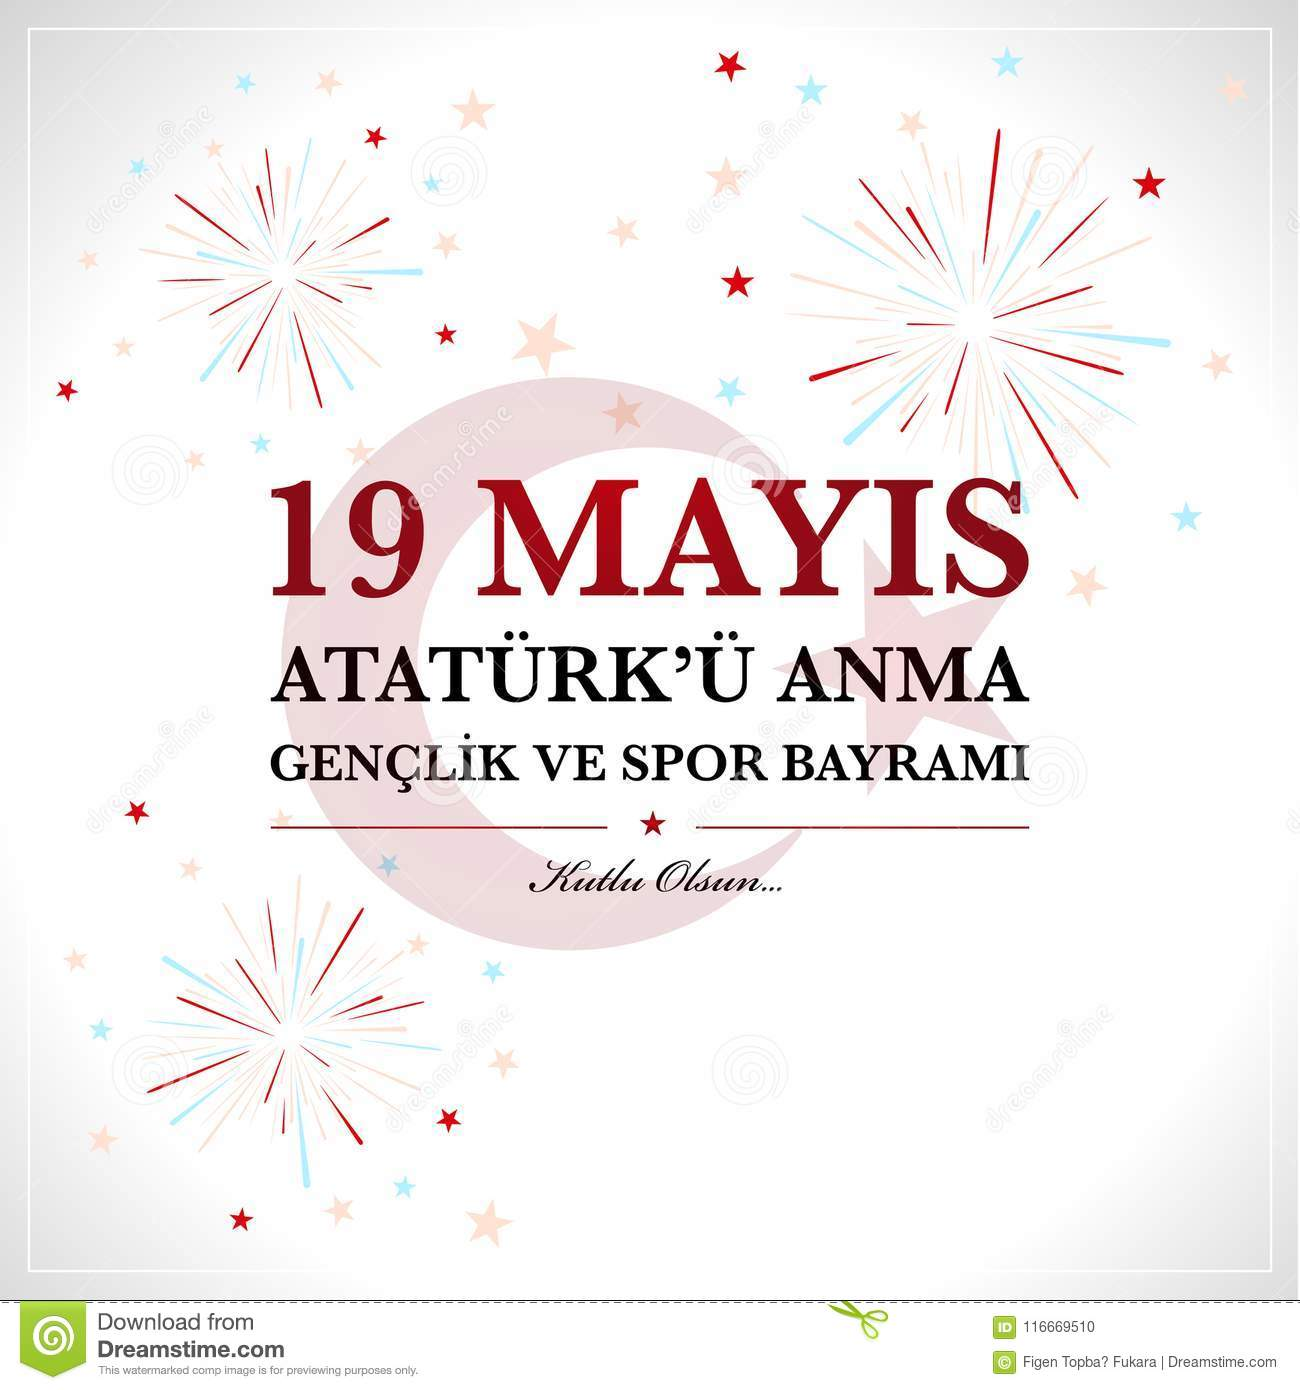 19th may commemoration of Ataturk, Youth and Sports Day.